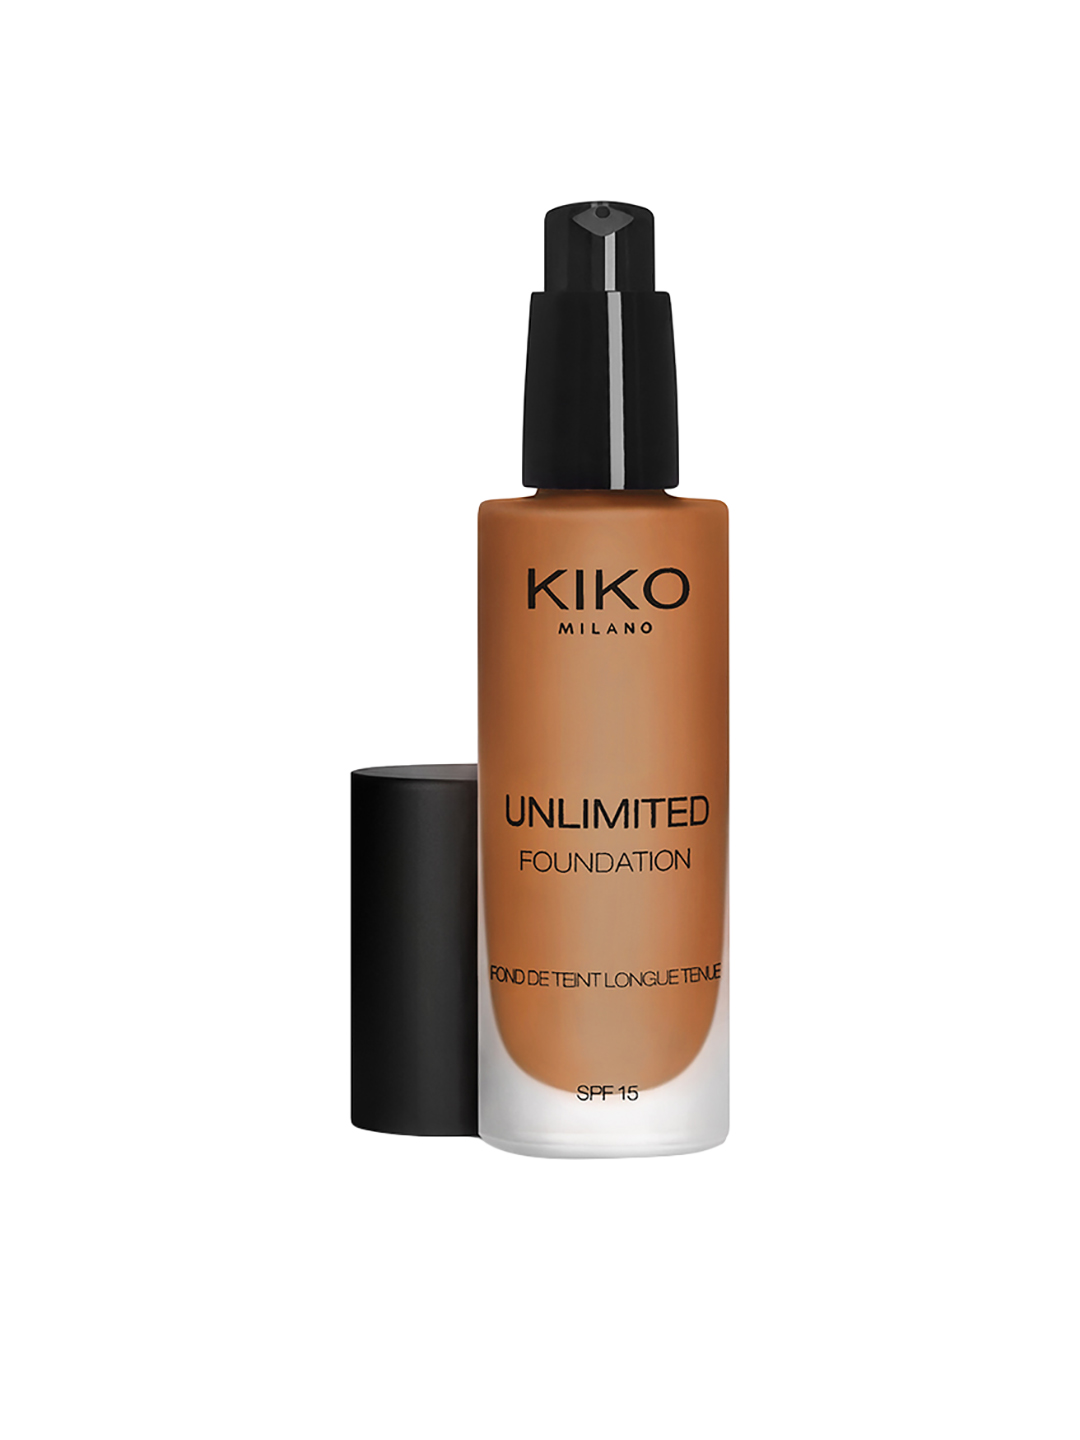 Kiko Milano Unlimited Foundation